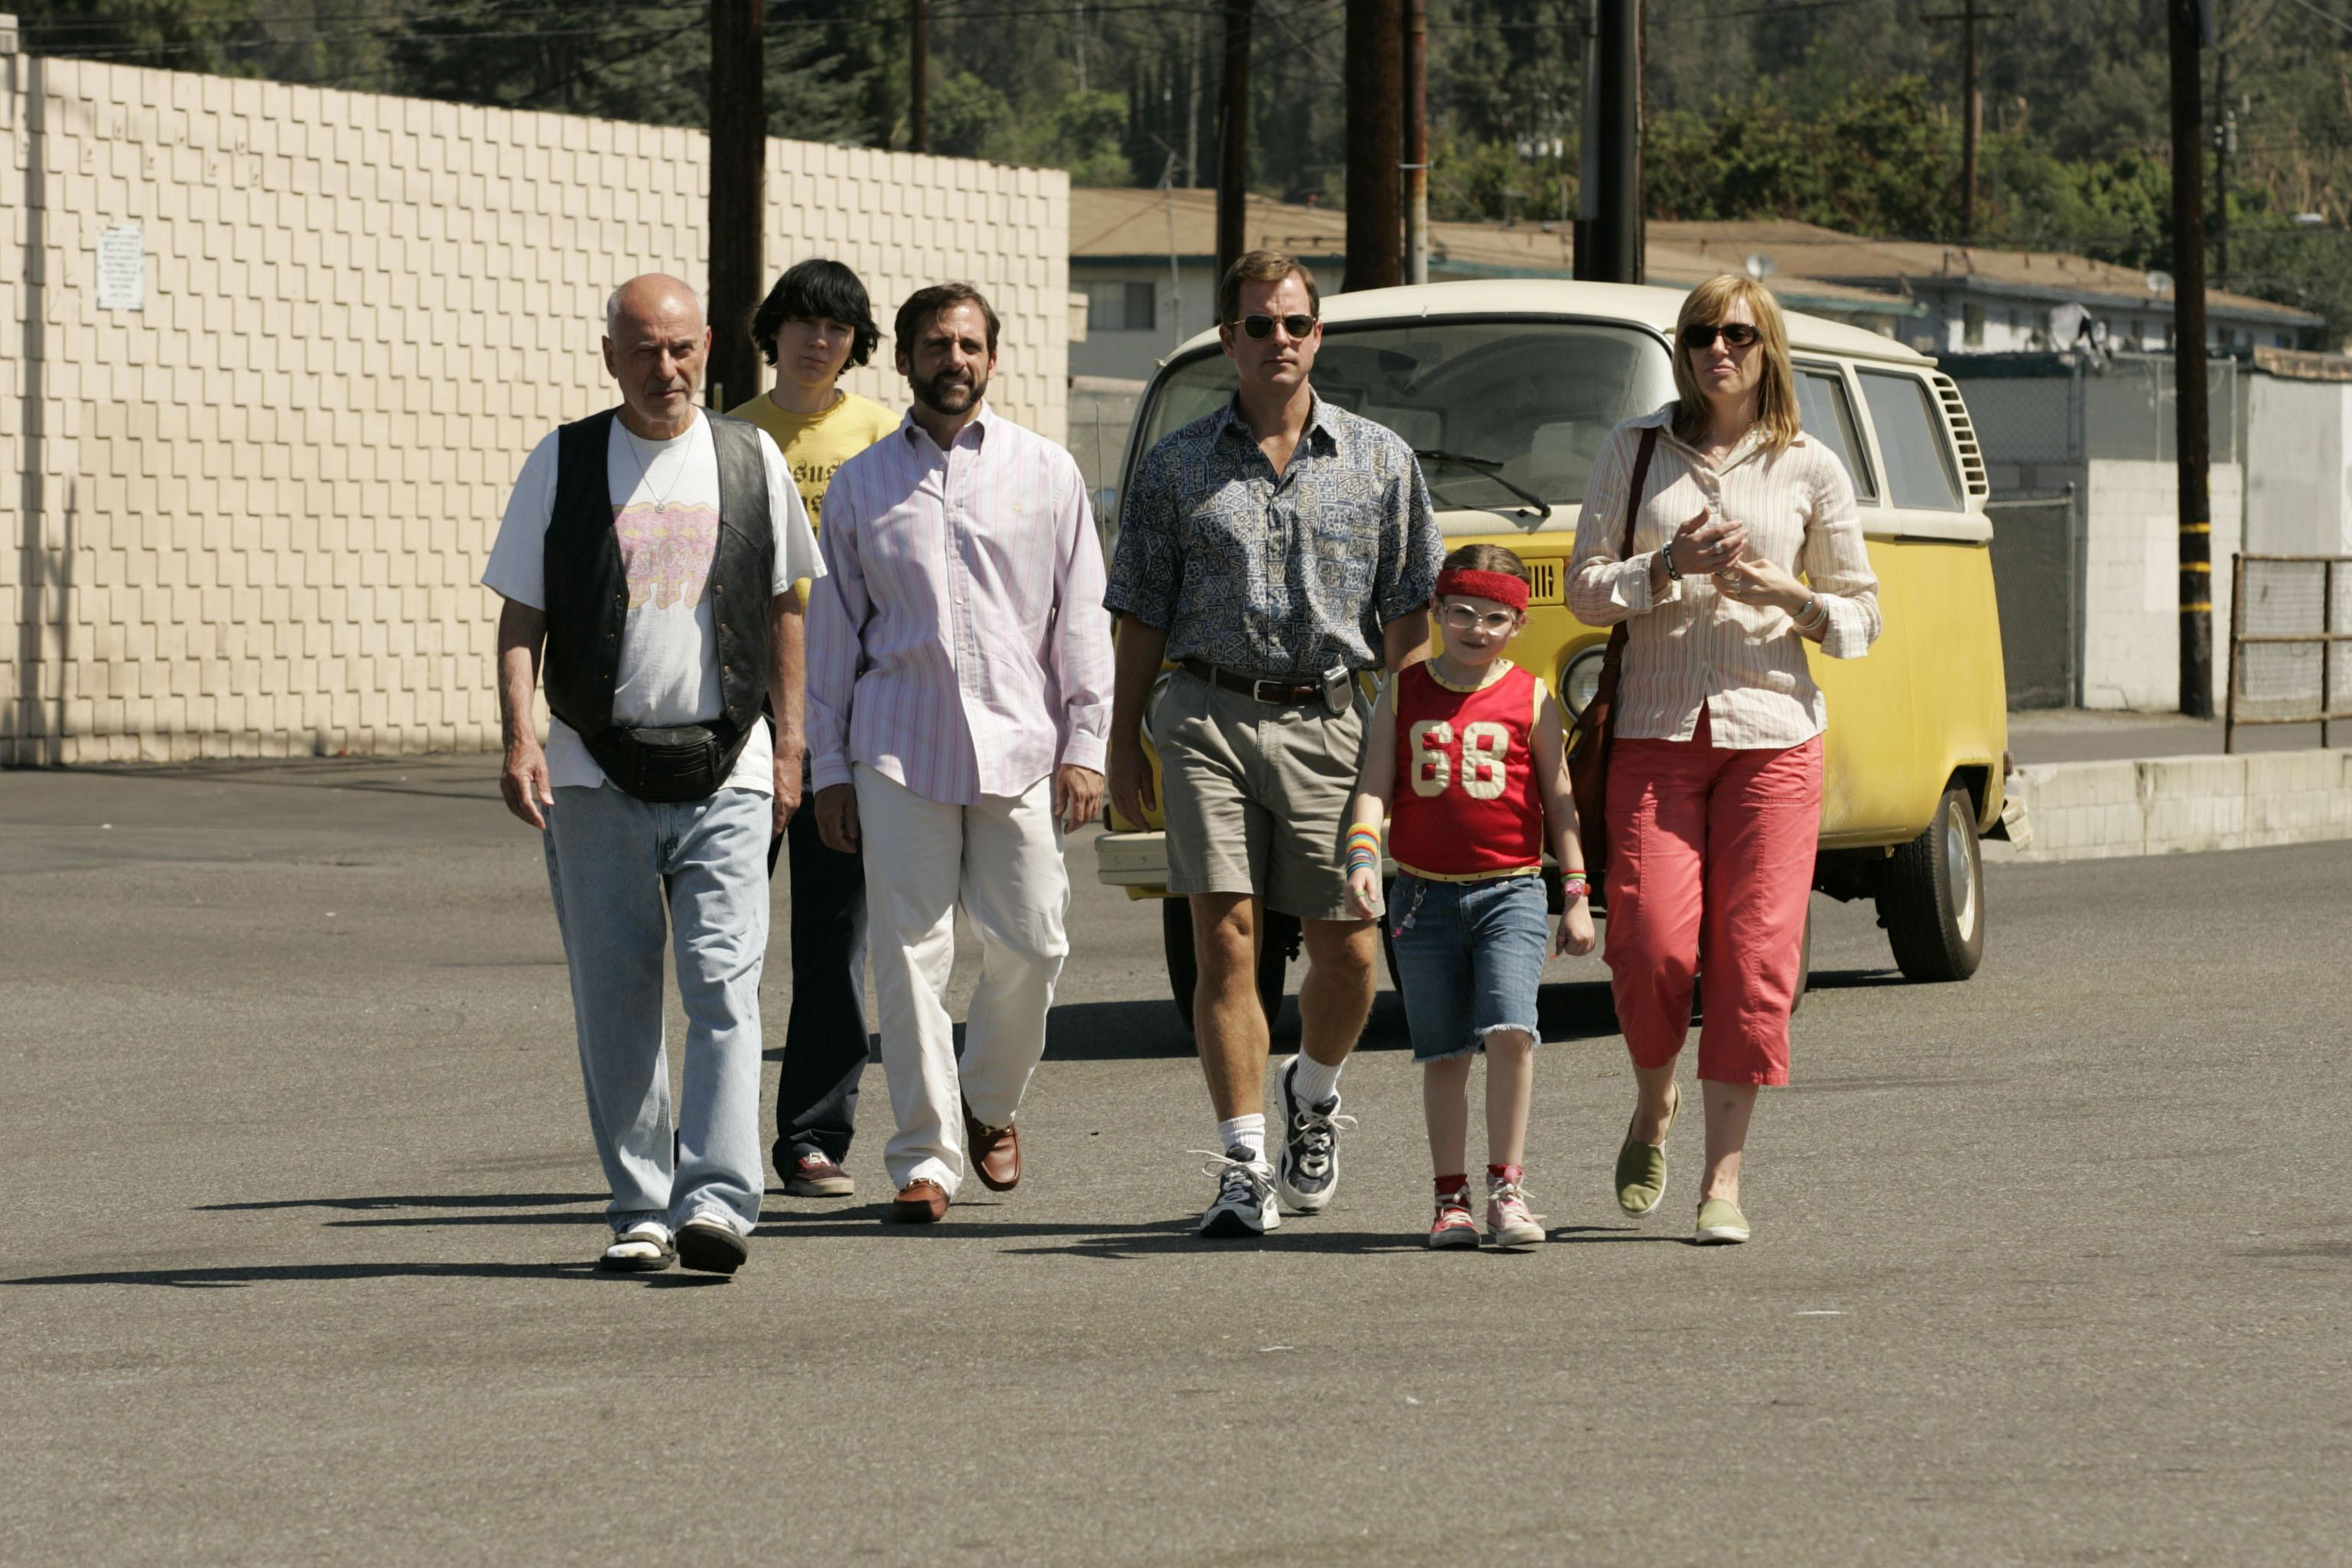 Little miss Sunshine: semplice e brillante